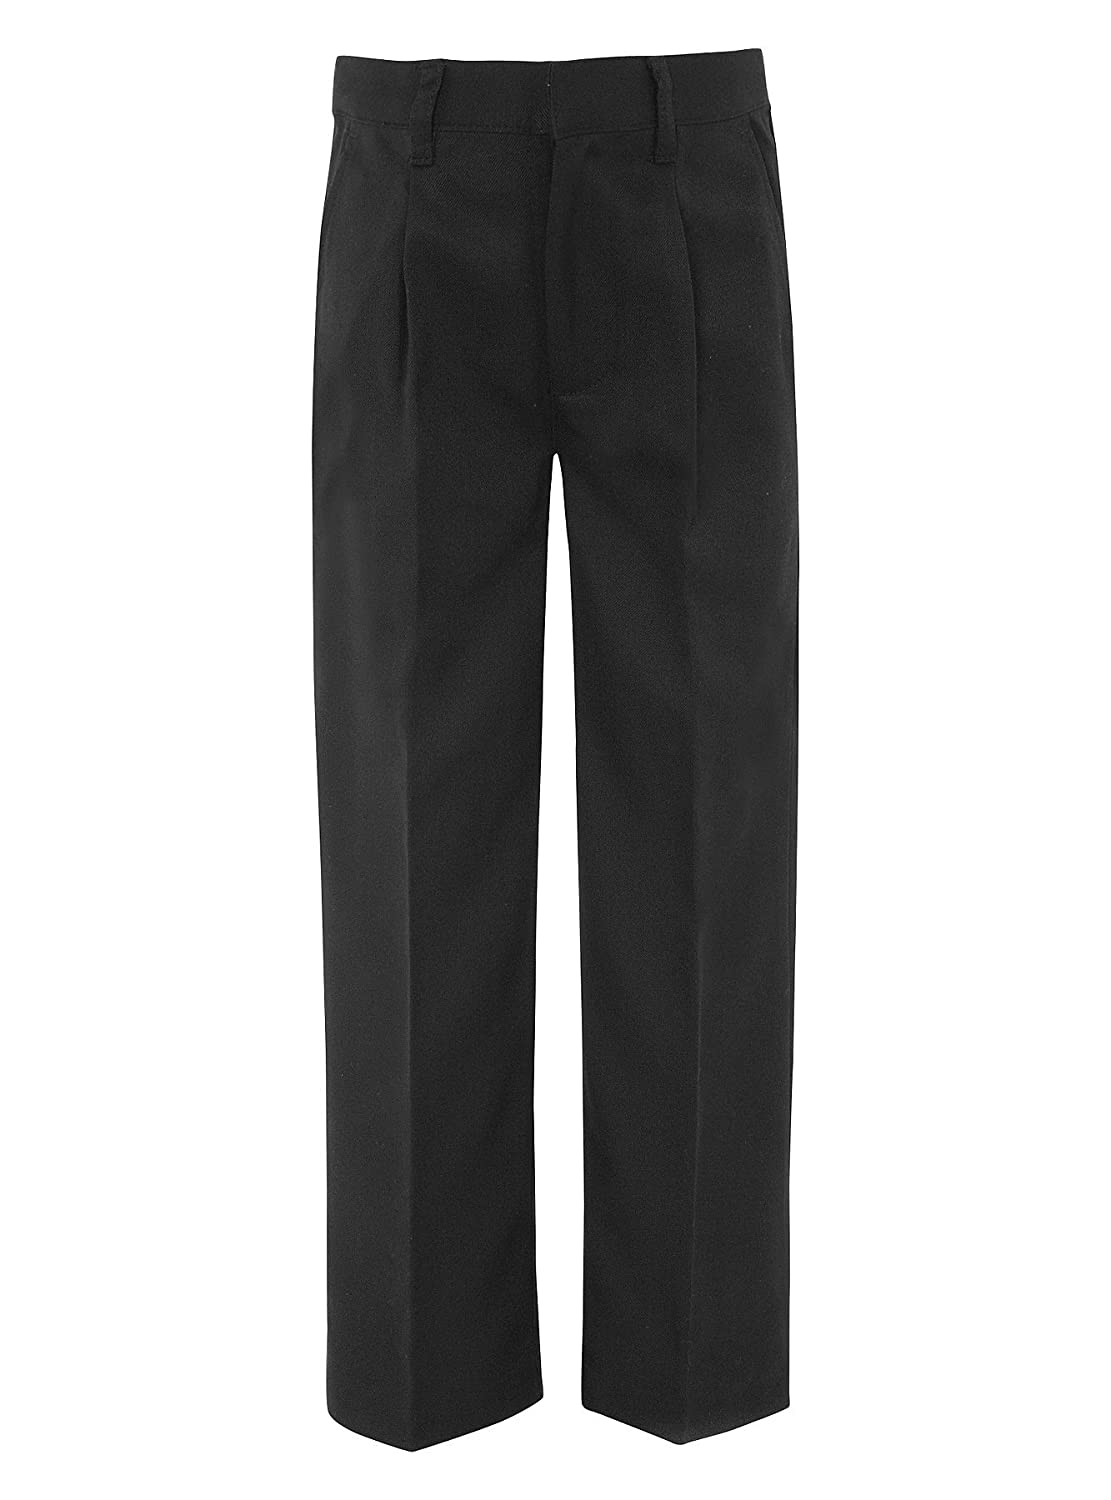 Boys School Elasticated Waist Trousers